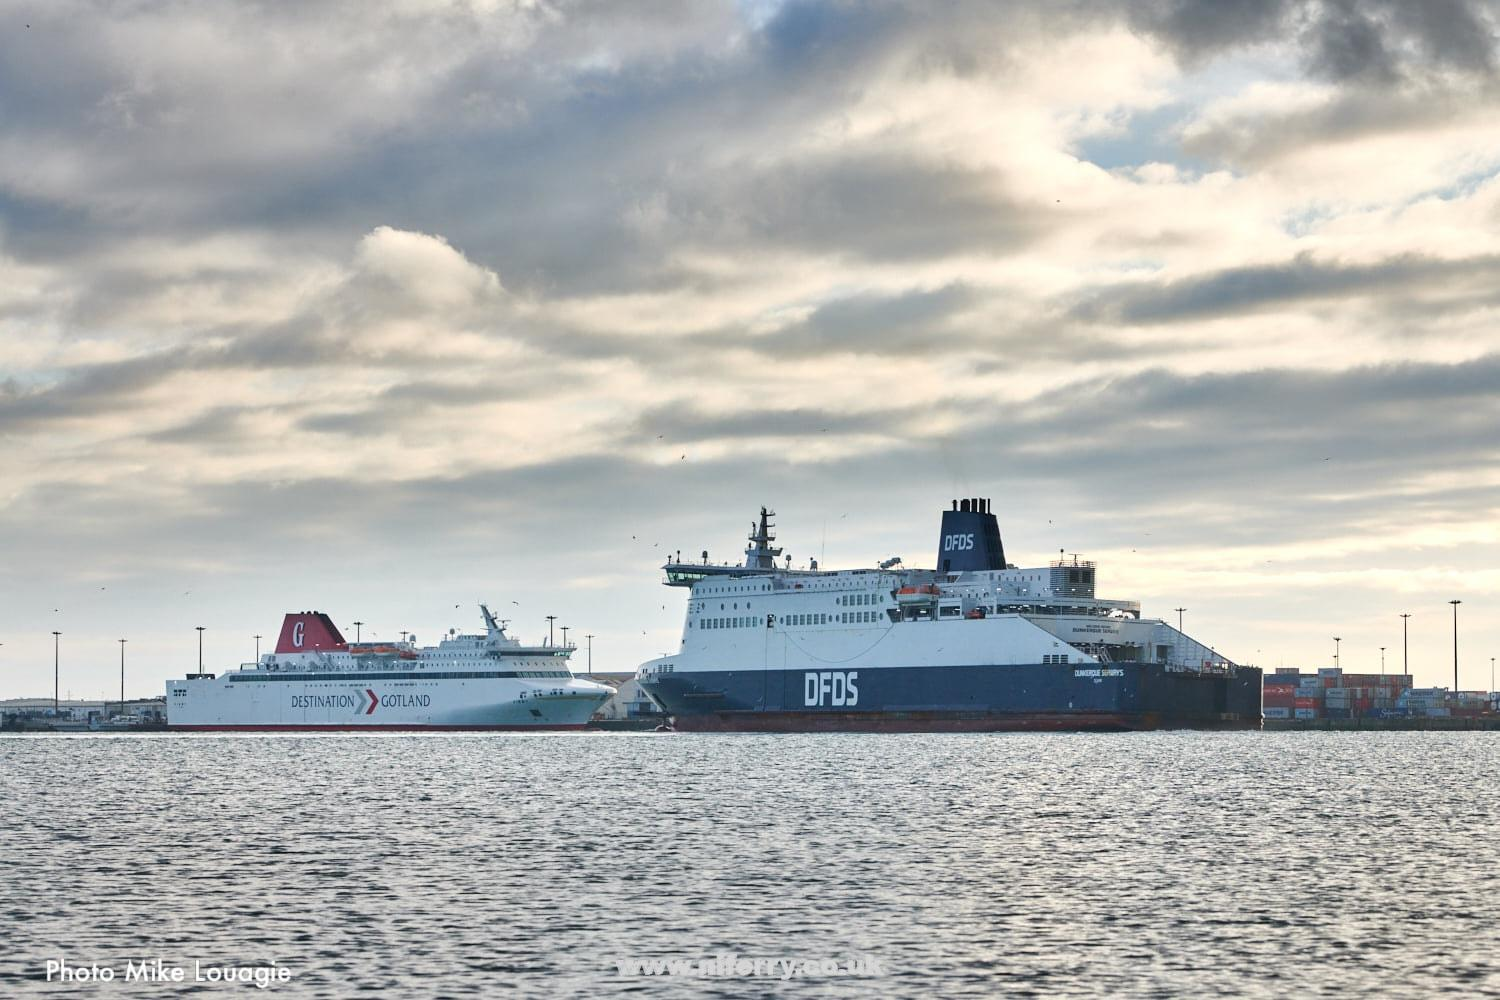 DFDS fleet-mates VISBY and DUNKERQUE SEAWAYS seen together at Dunkerque on the morning of December 29, 2020. Copyright © Mike Louagie.